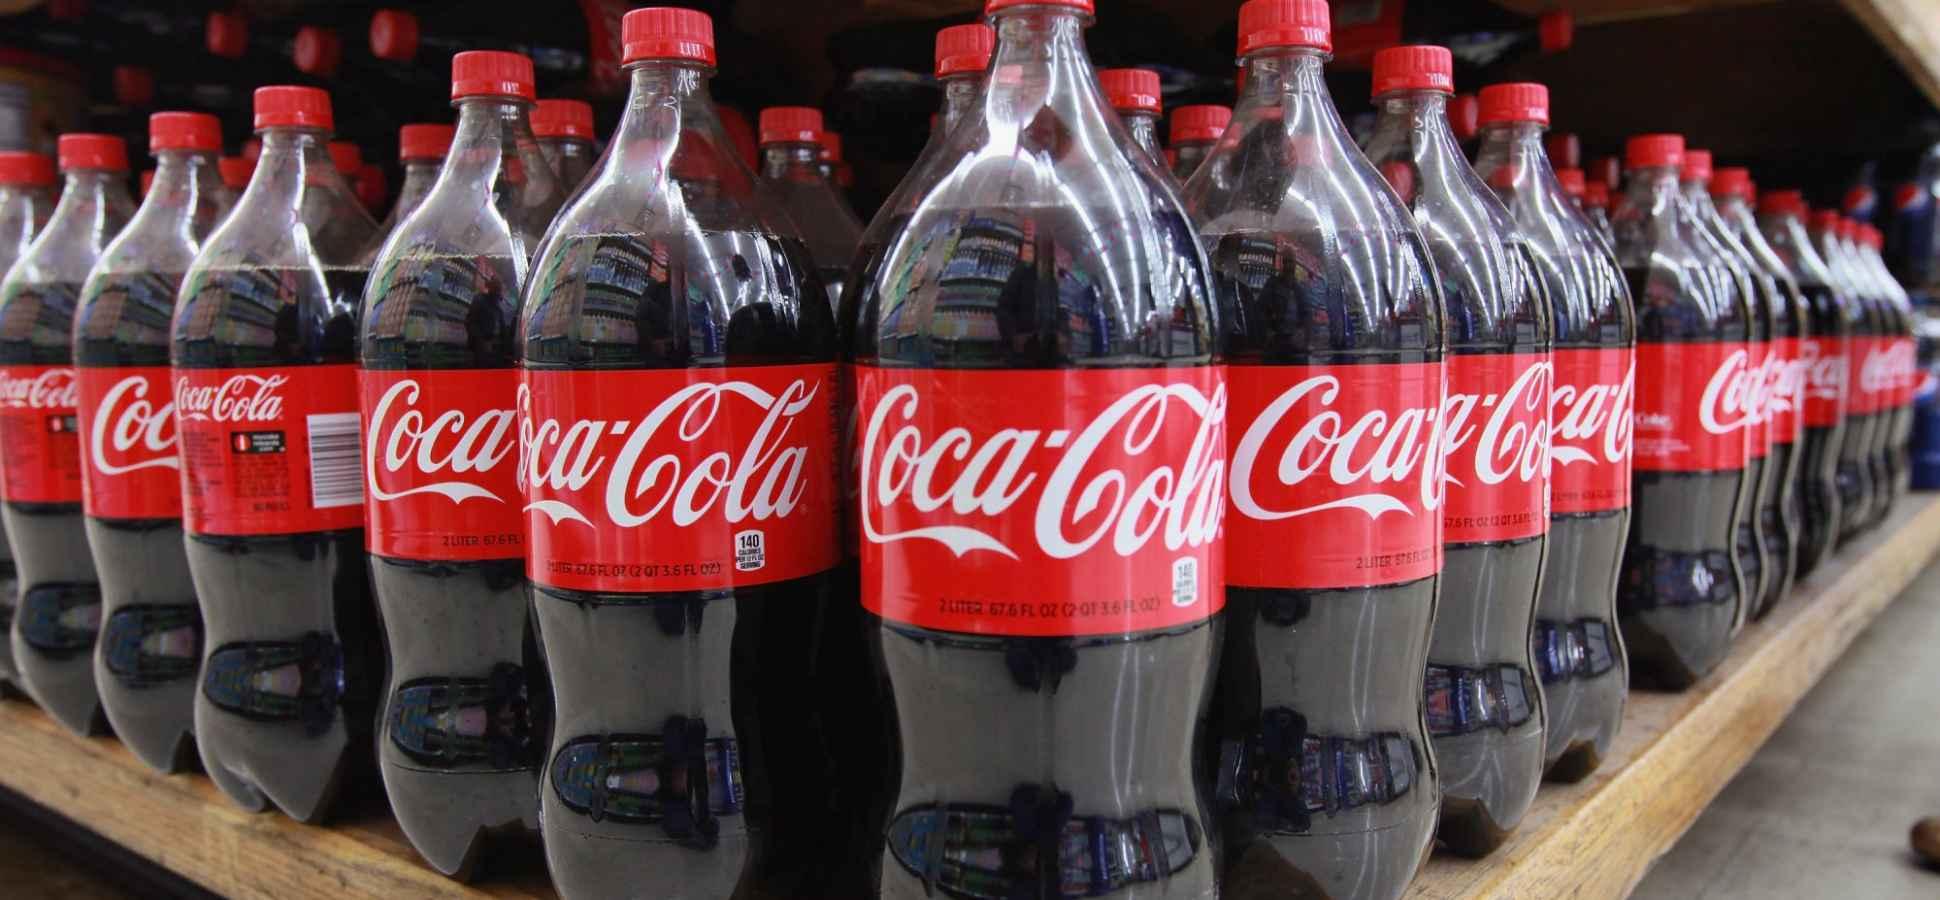 How Coca-Cola Left A Bad Taste In Many Mouths